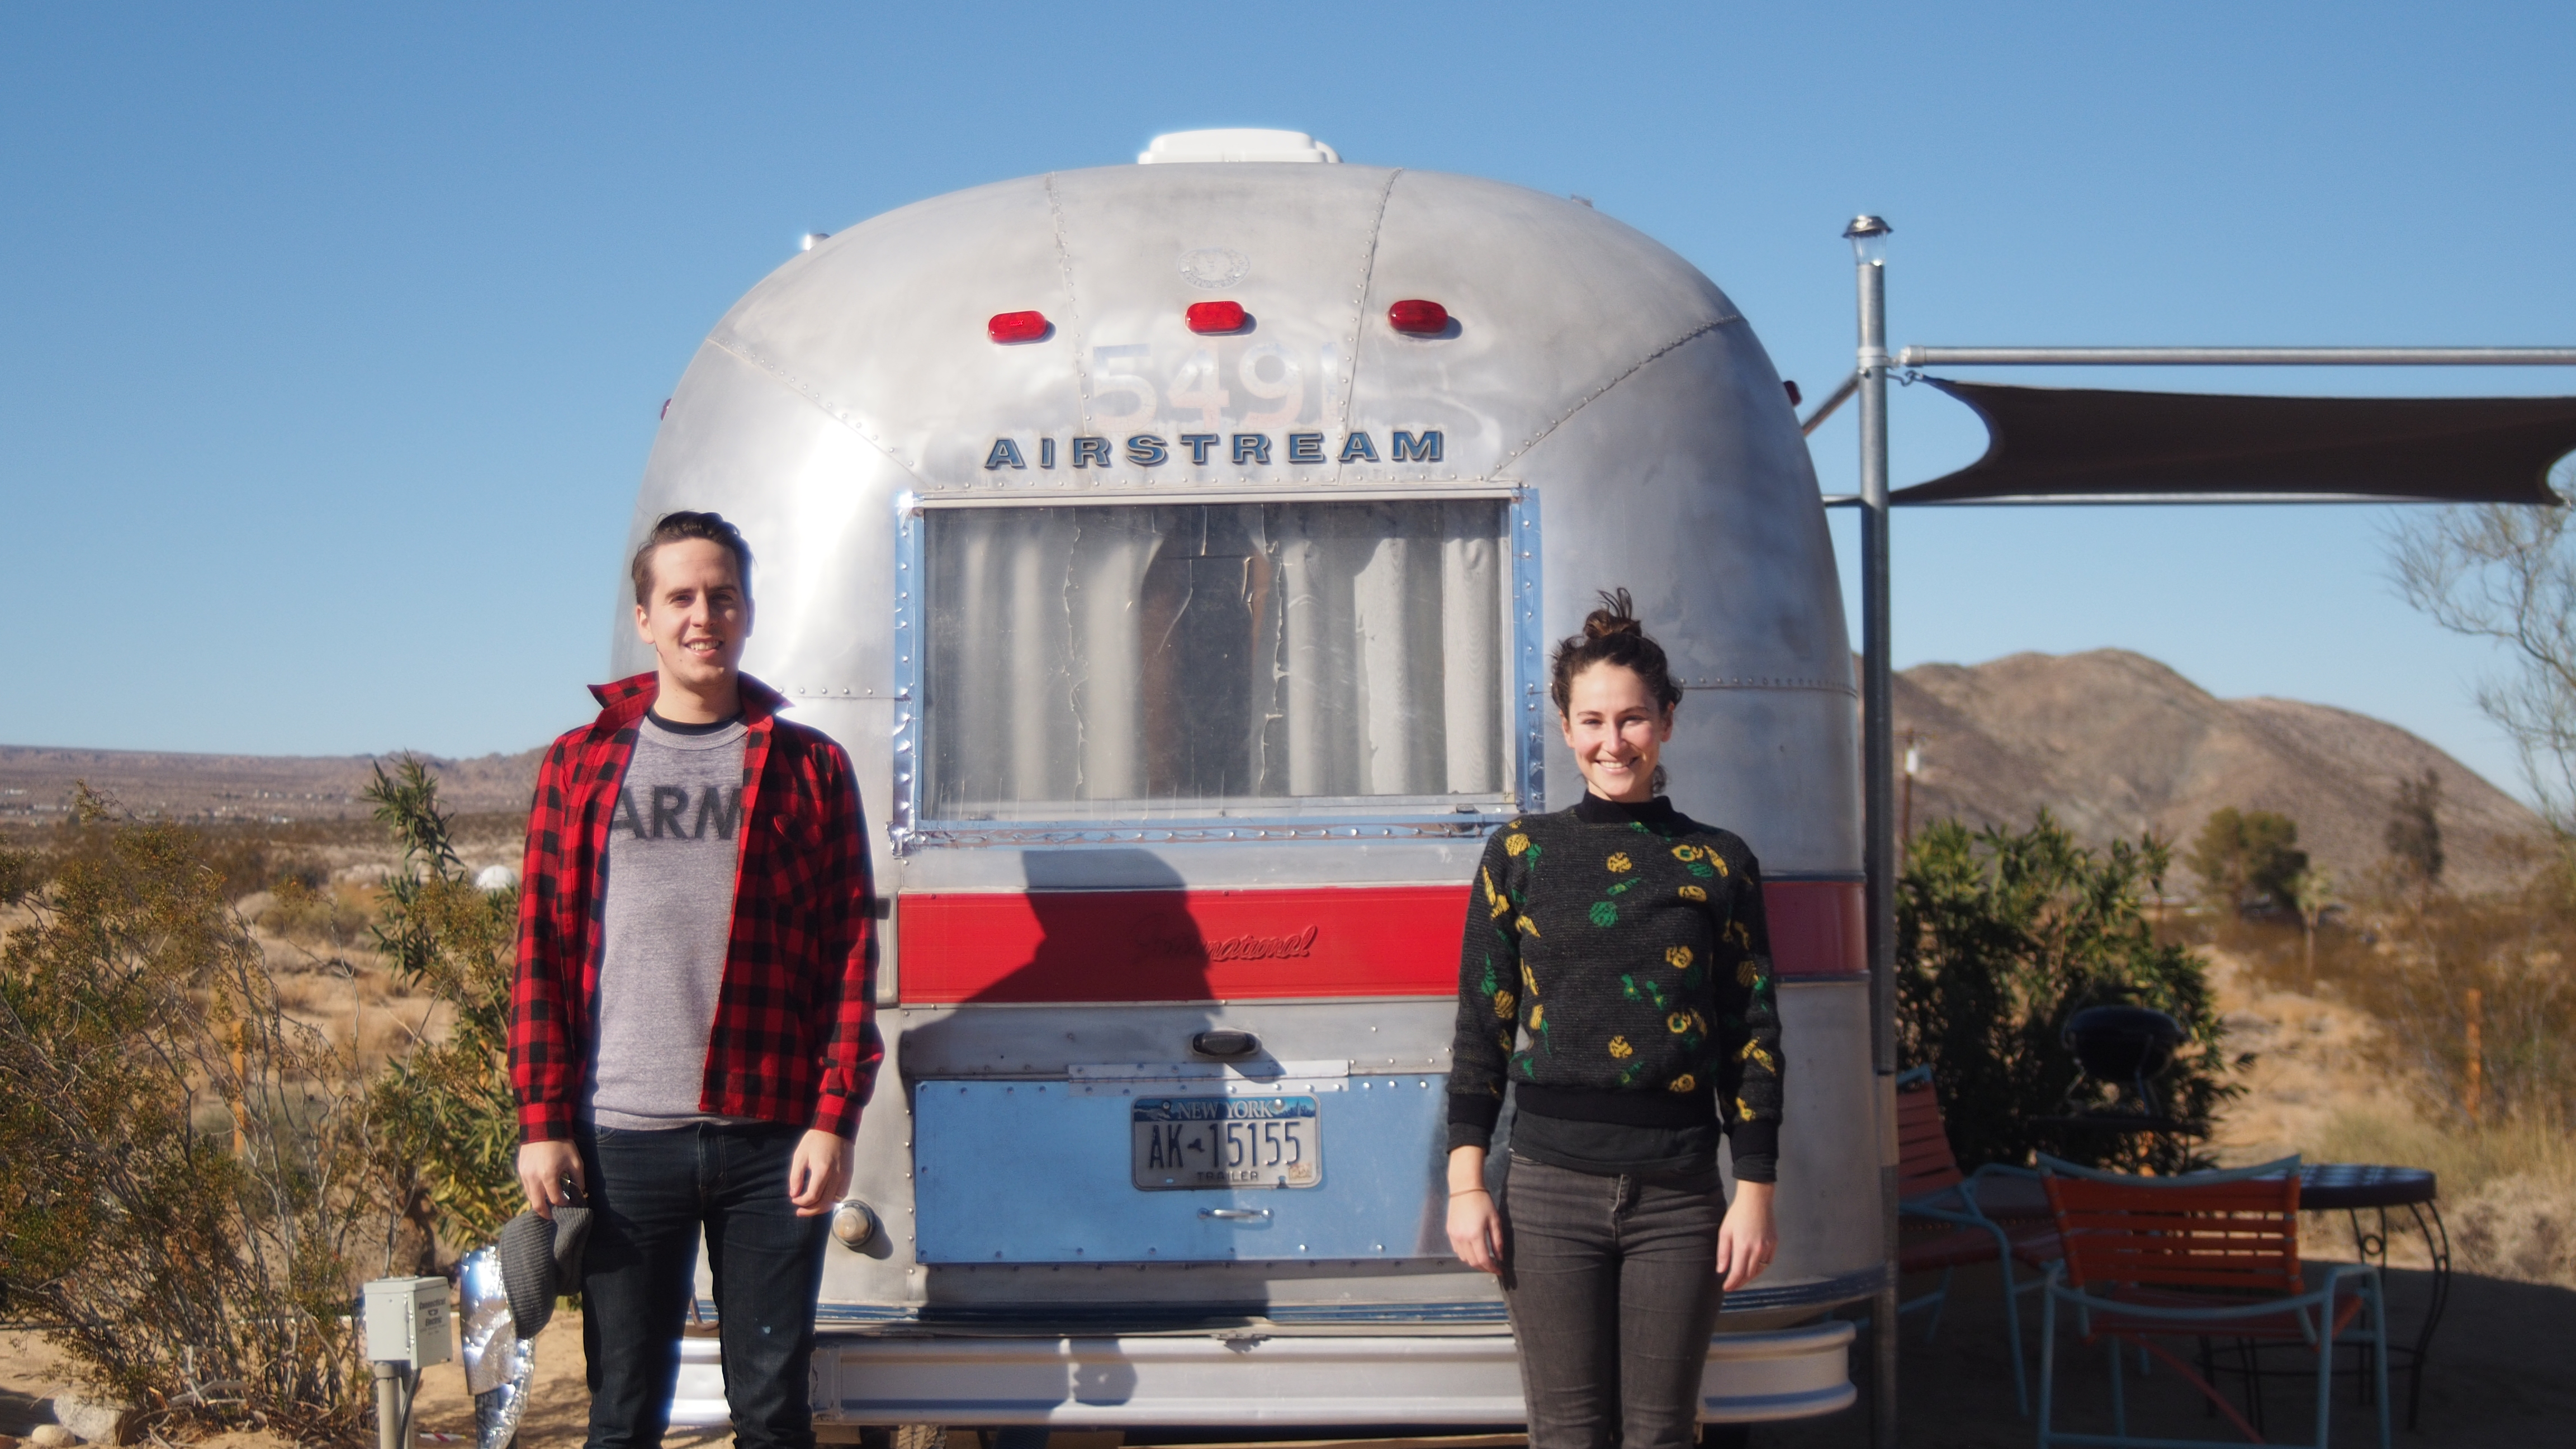 Our last great adventure - camping in an RV in the Joshua Tree desert. We are committed to doing more of this!